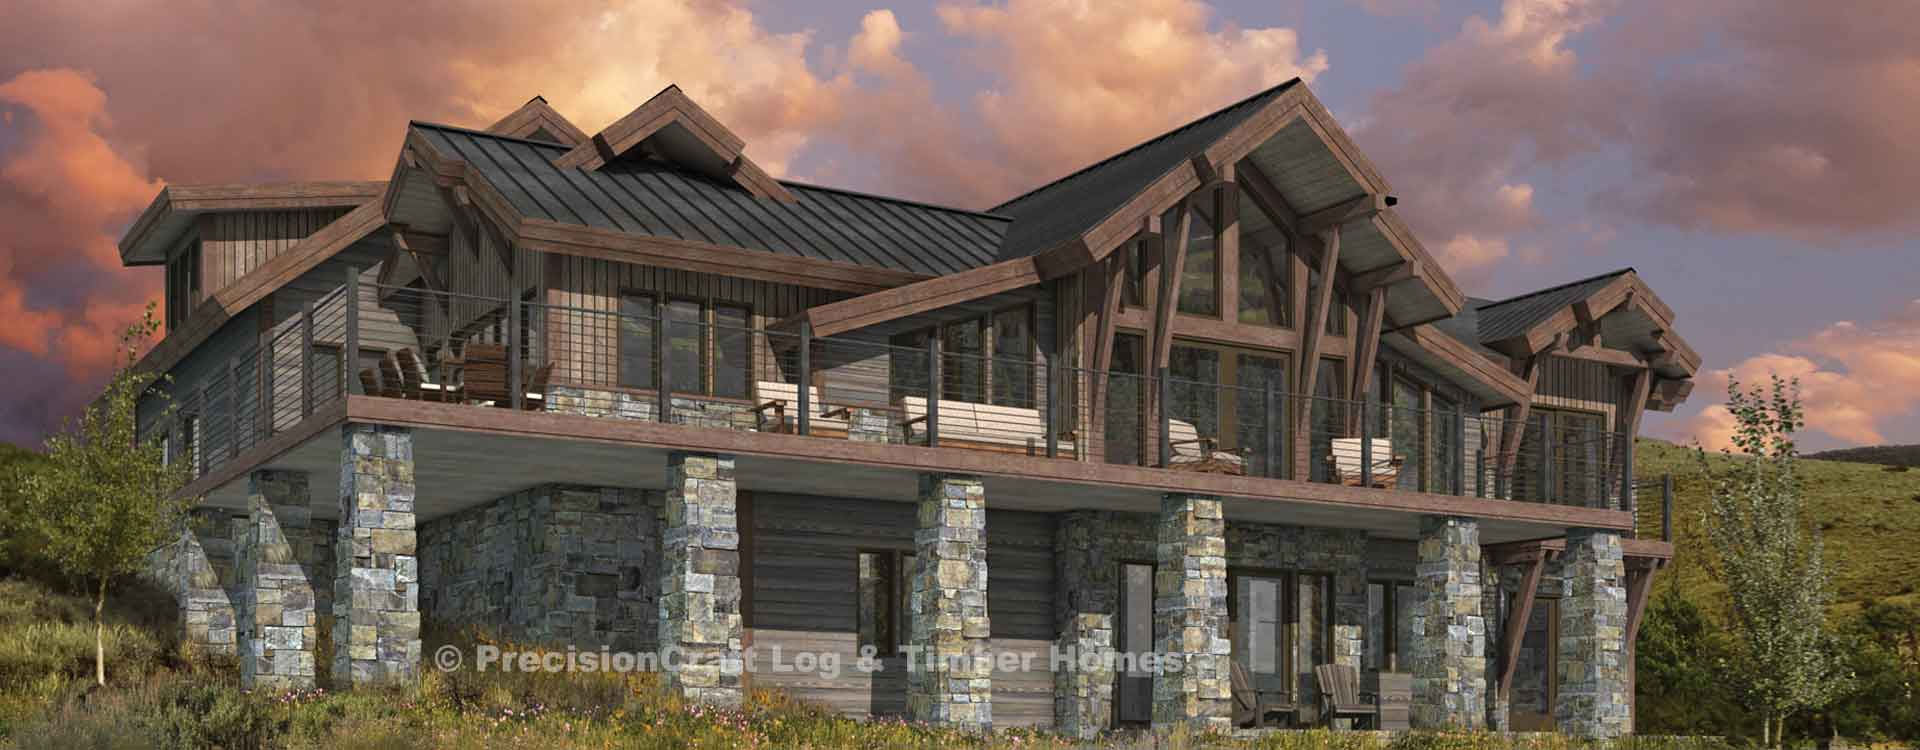 timber frame and log home floor plans by precisioncraft breckenridge custom timber home plan